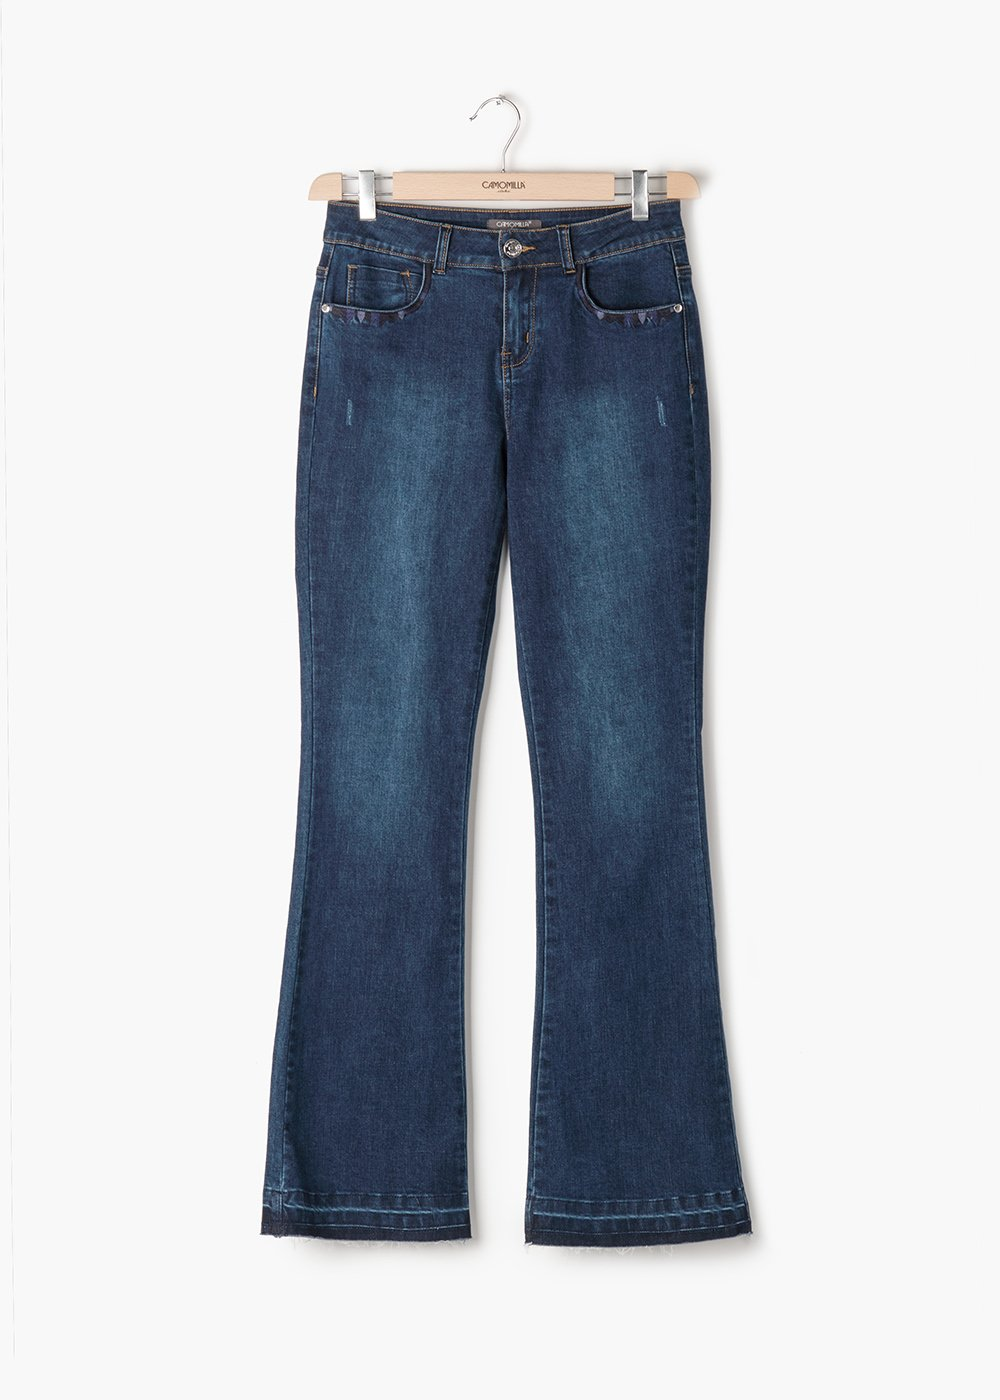 5-Pocket Denim Dagor bootcut model